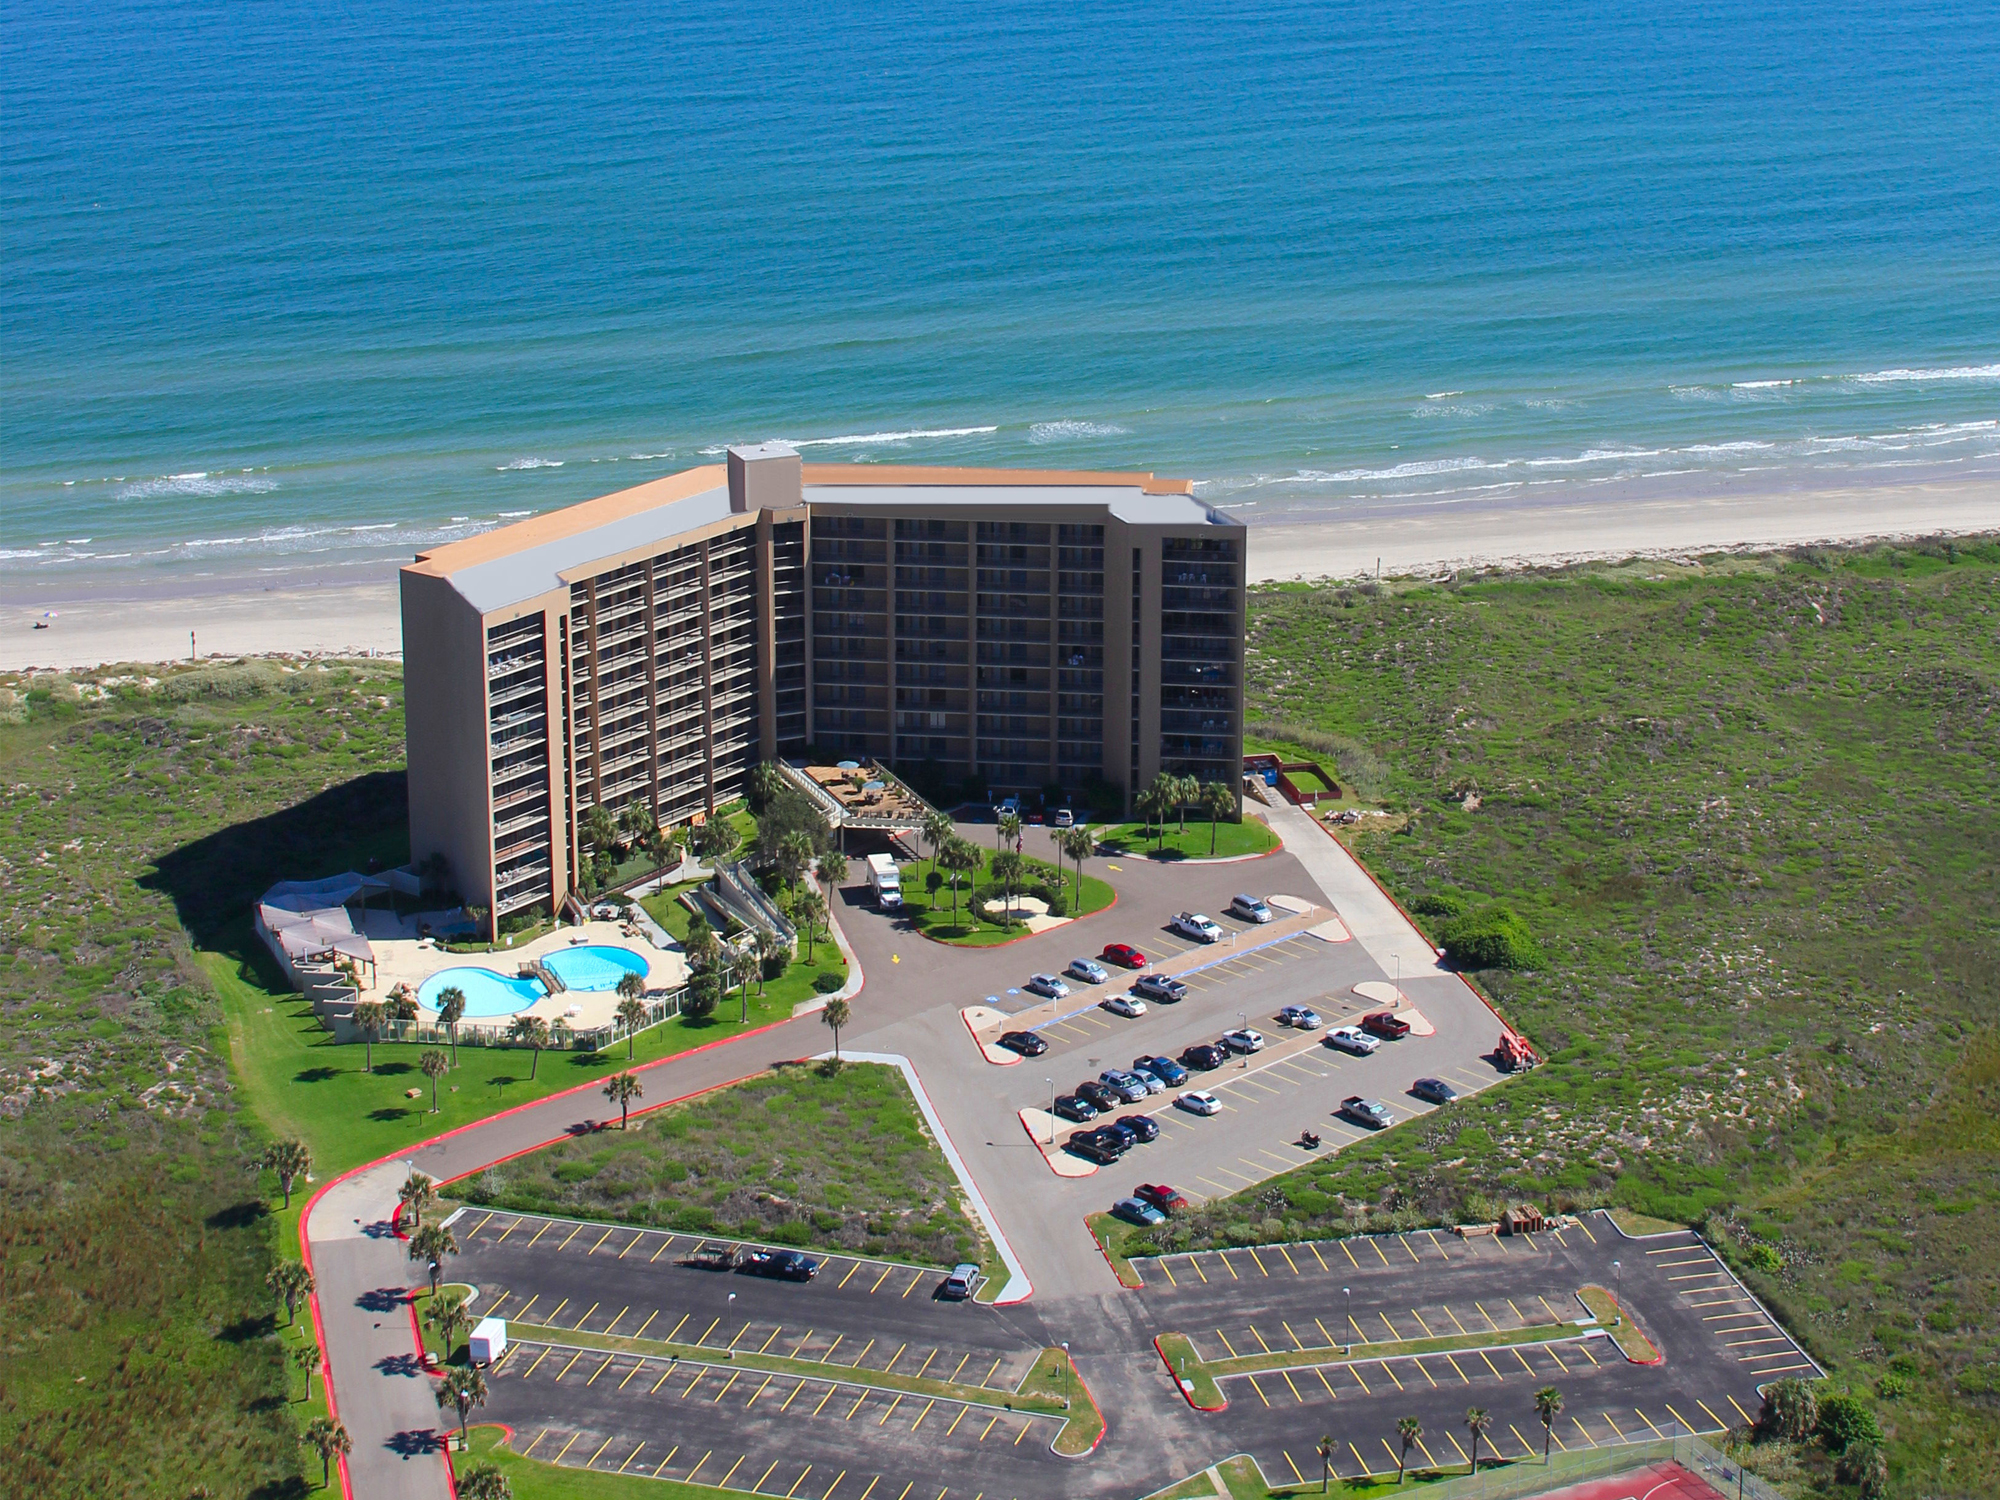 Port Aransas Beachfront Resorts Portaransas Texas Com